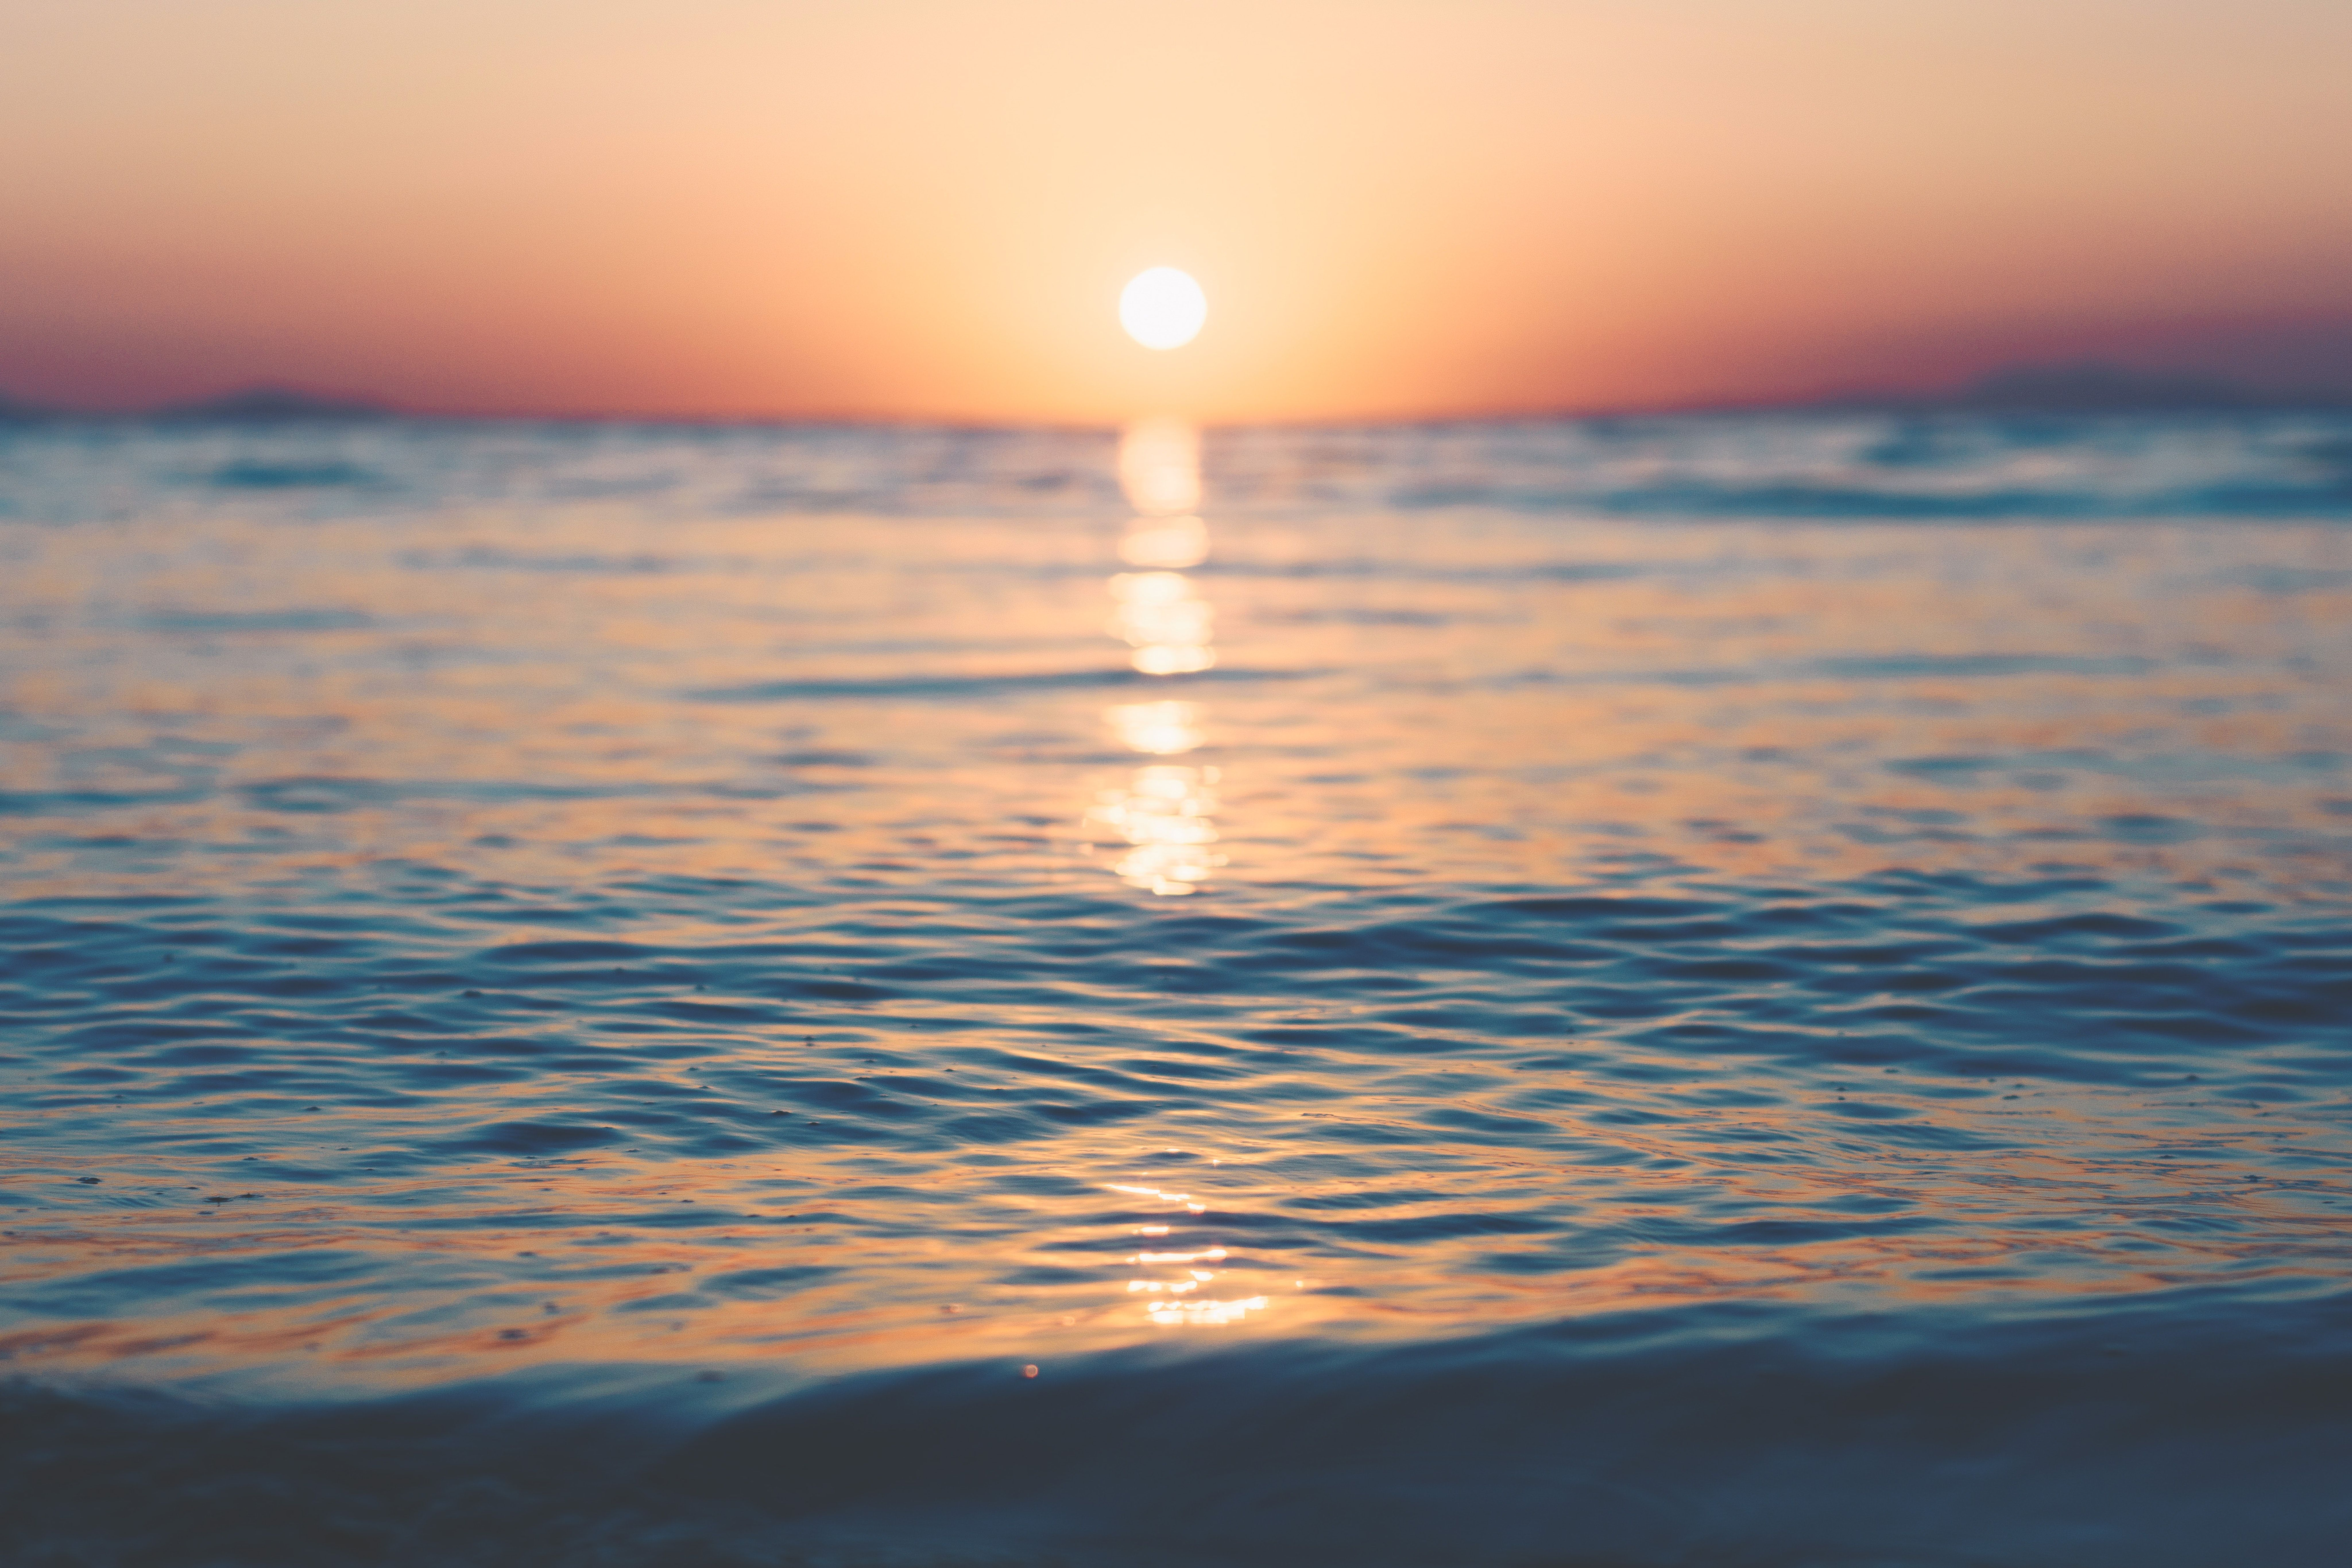 Gentle Ocean Waves Calmly Hit The Sands Of Roitika Beach Reflecting The Colors Of The Sunset Beach Sunset Wallpaper Beach Images Sunset Wallpaper